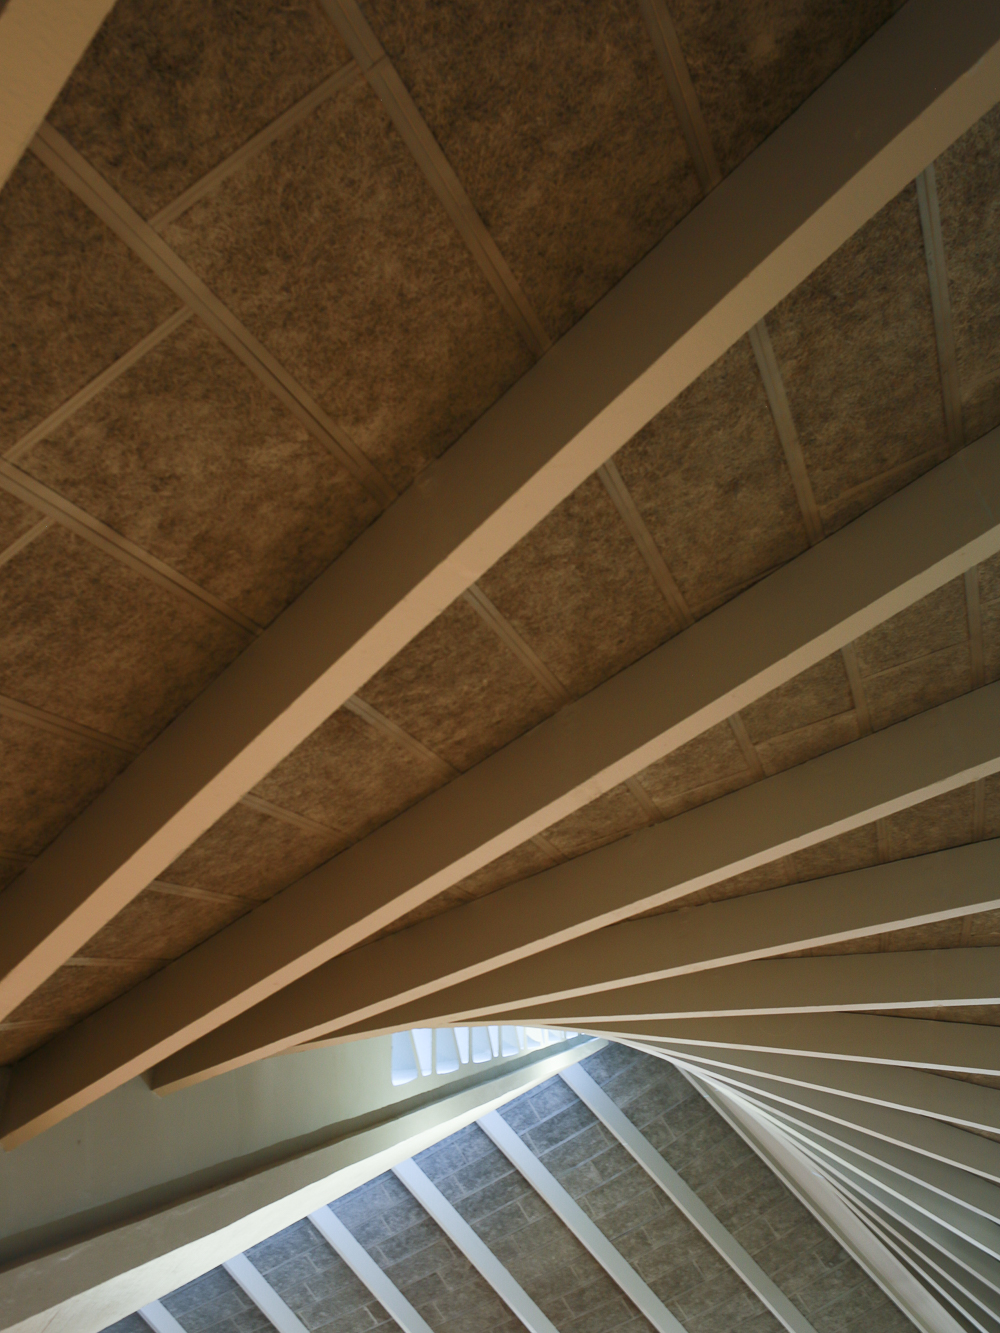 Roof detail at the new Design Museum | John Pawson